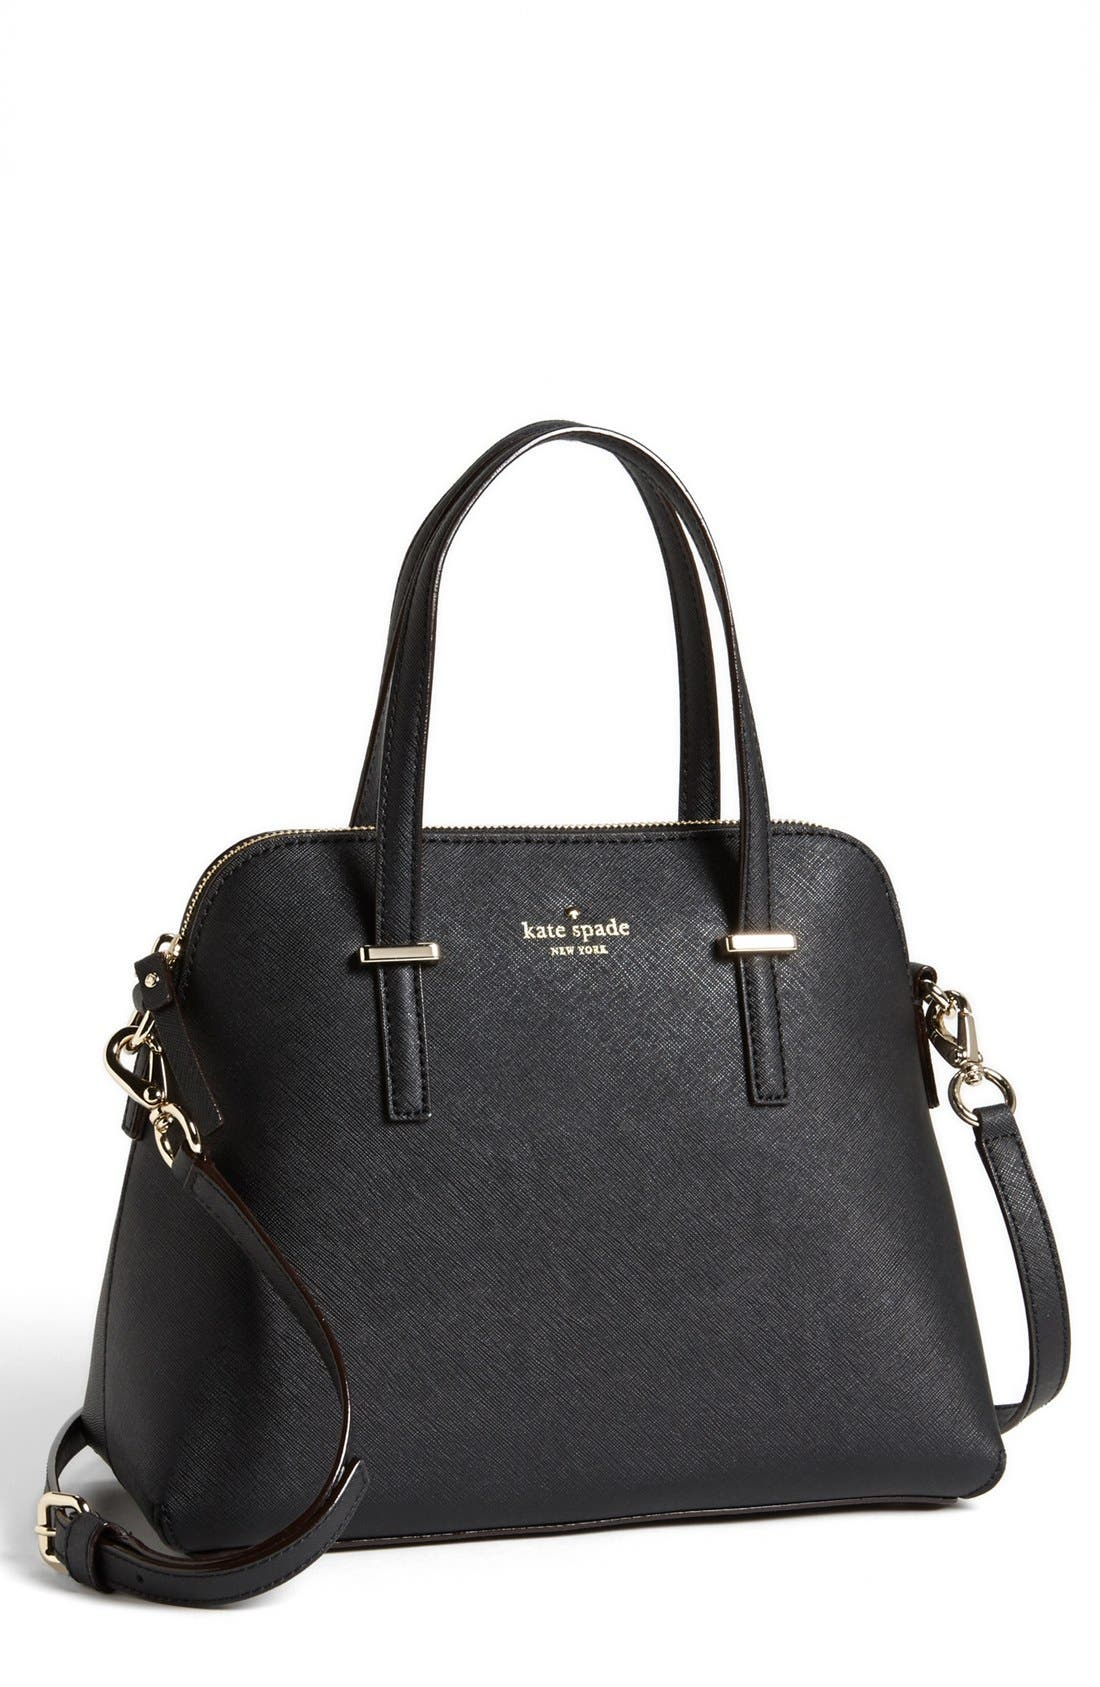 kate spade new york 'cedar street - maise' leather satchel